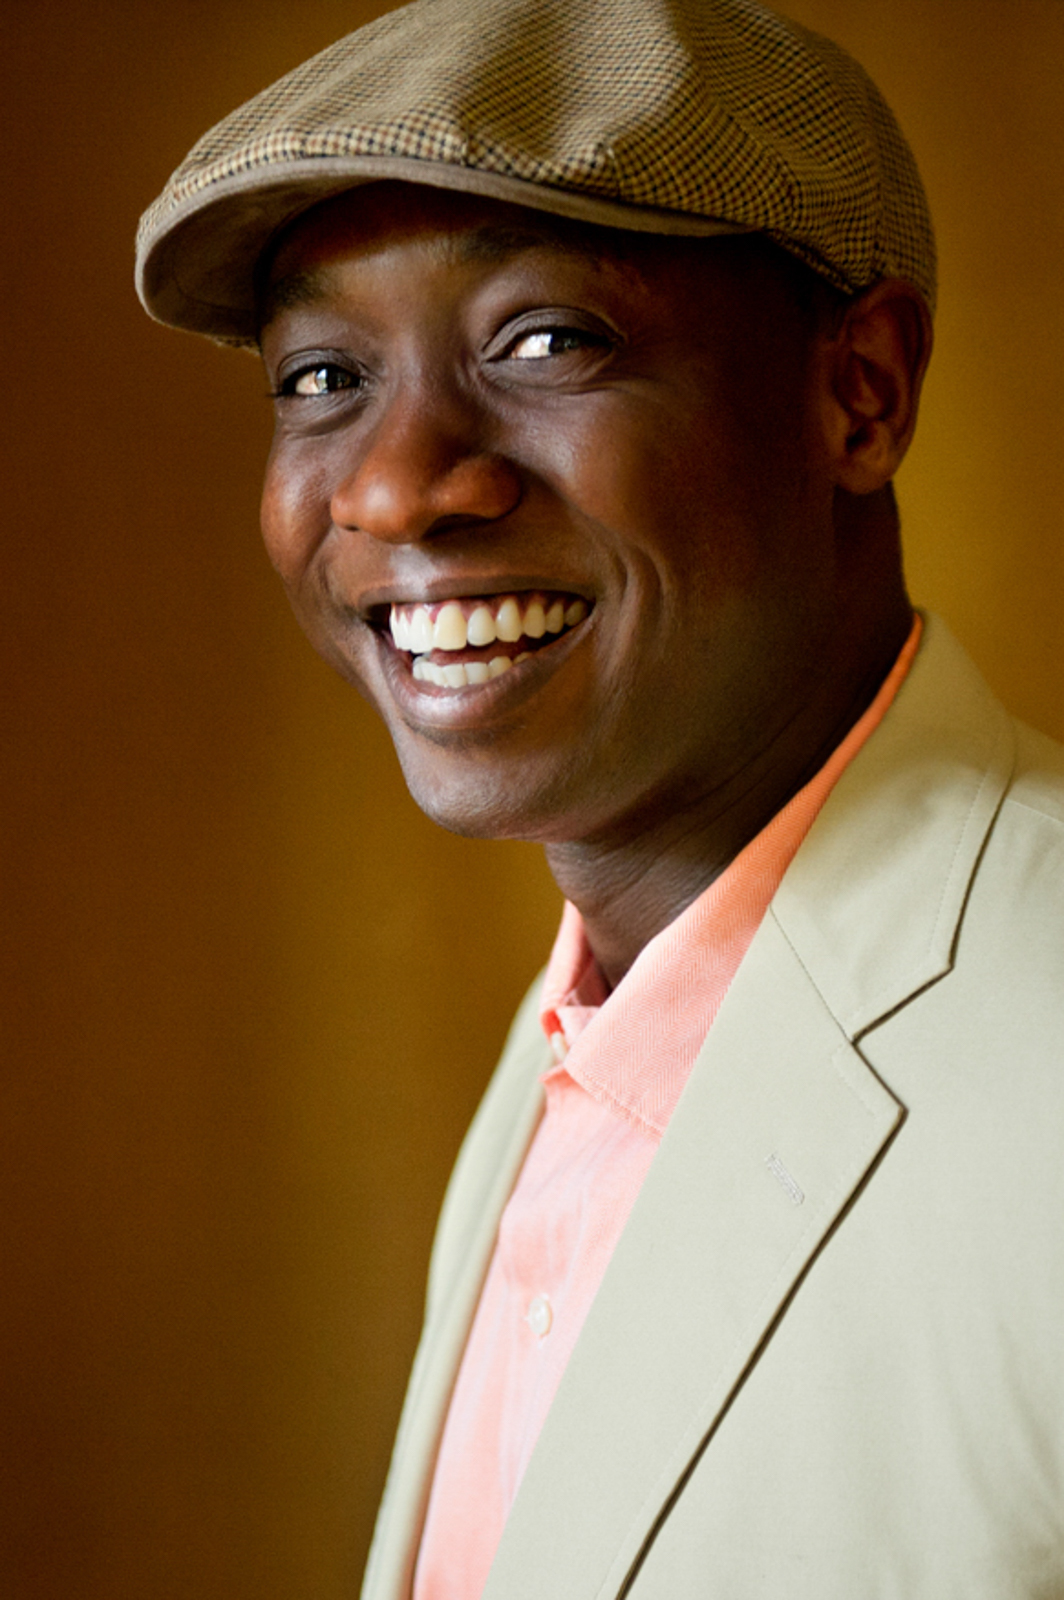 Portrait of man smiling wearing a hat